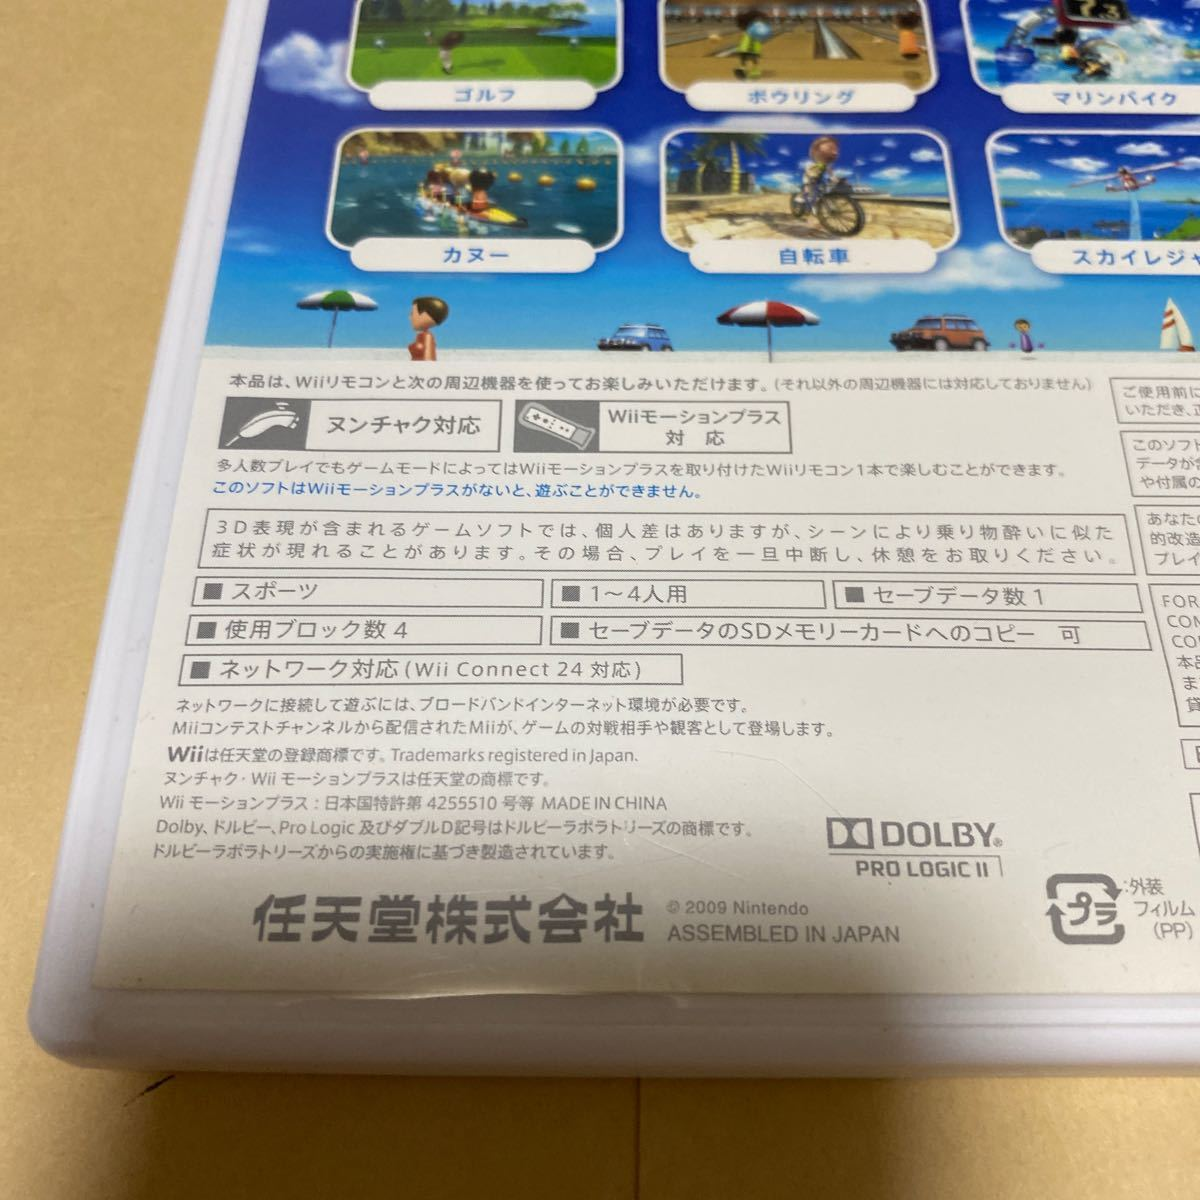 Wiiパーティと Wiiスポーツリゾート